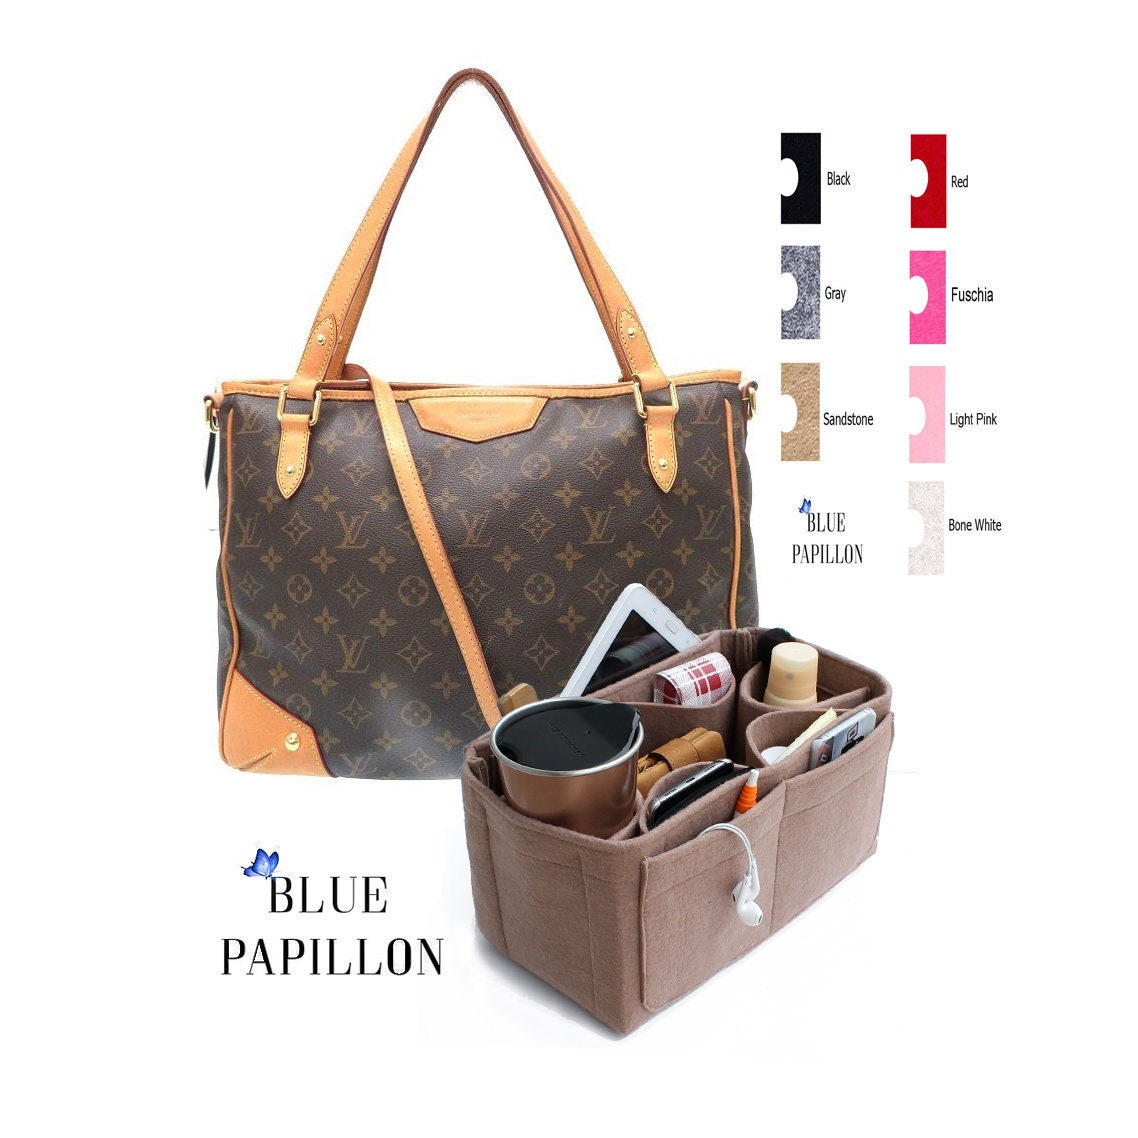 Bag purse organizer 73bd52b2812de